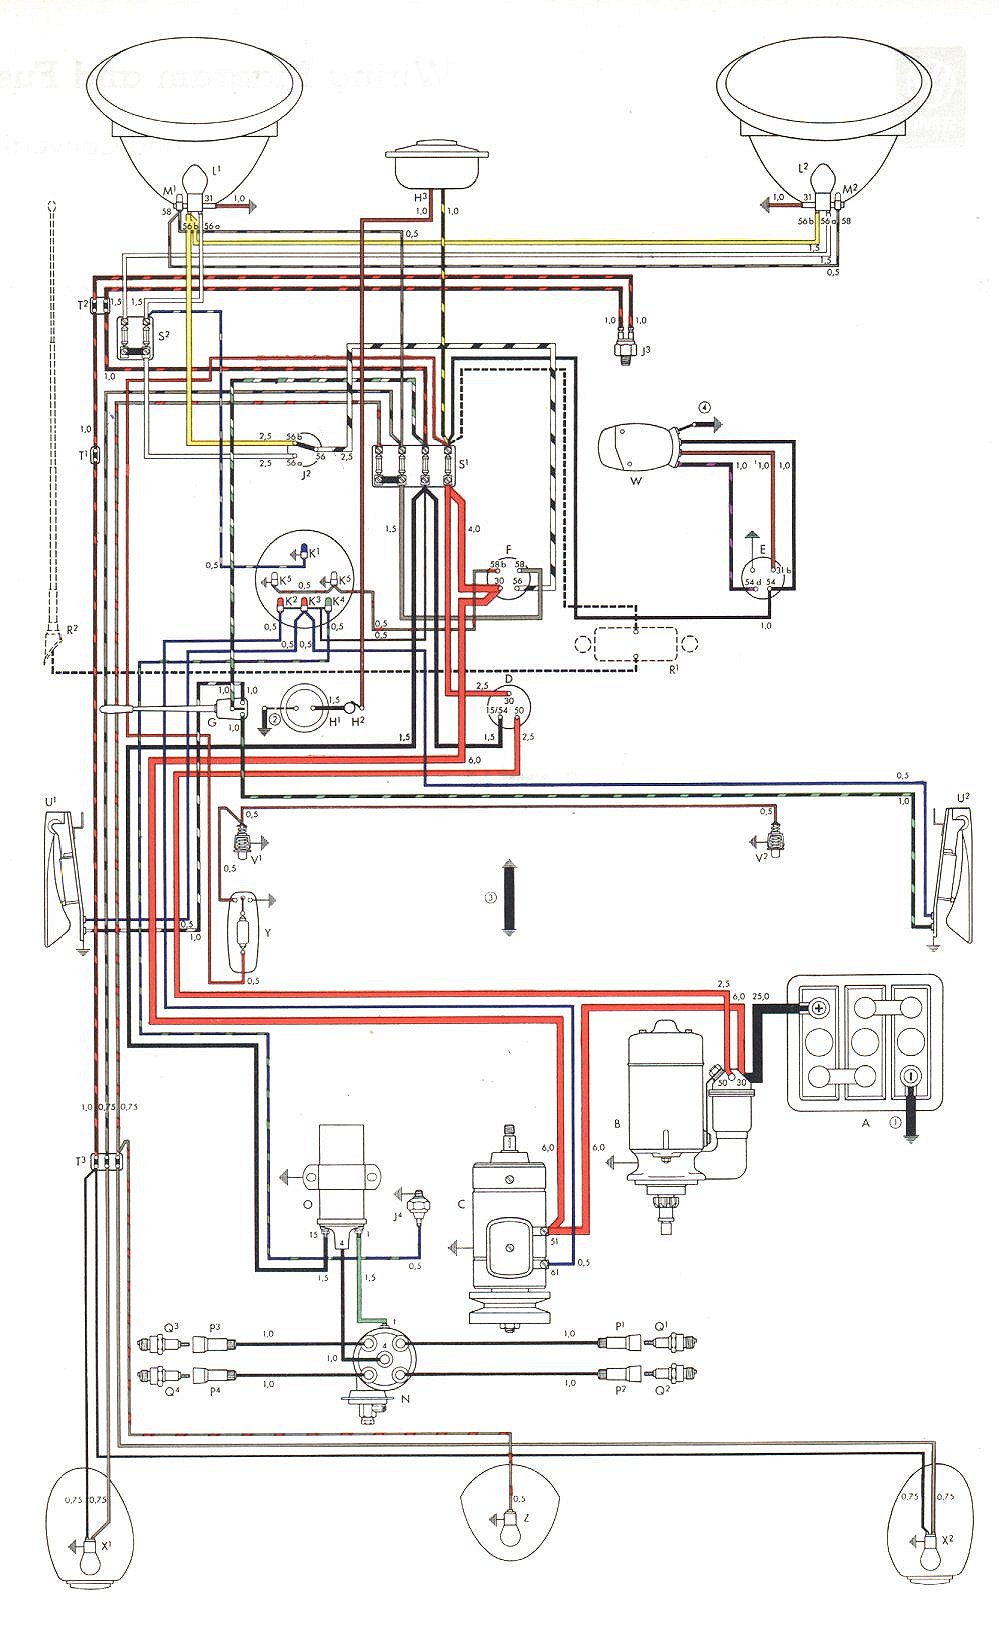 bug 58+59 euro vw wiring diagrams 1973 vw beetle wiring diagram at virtualis.co